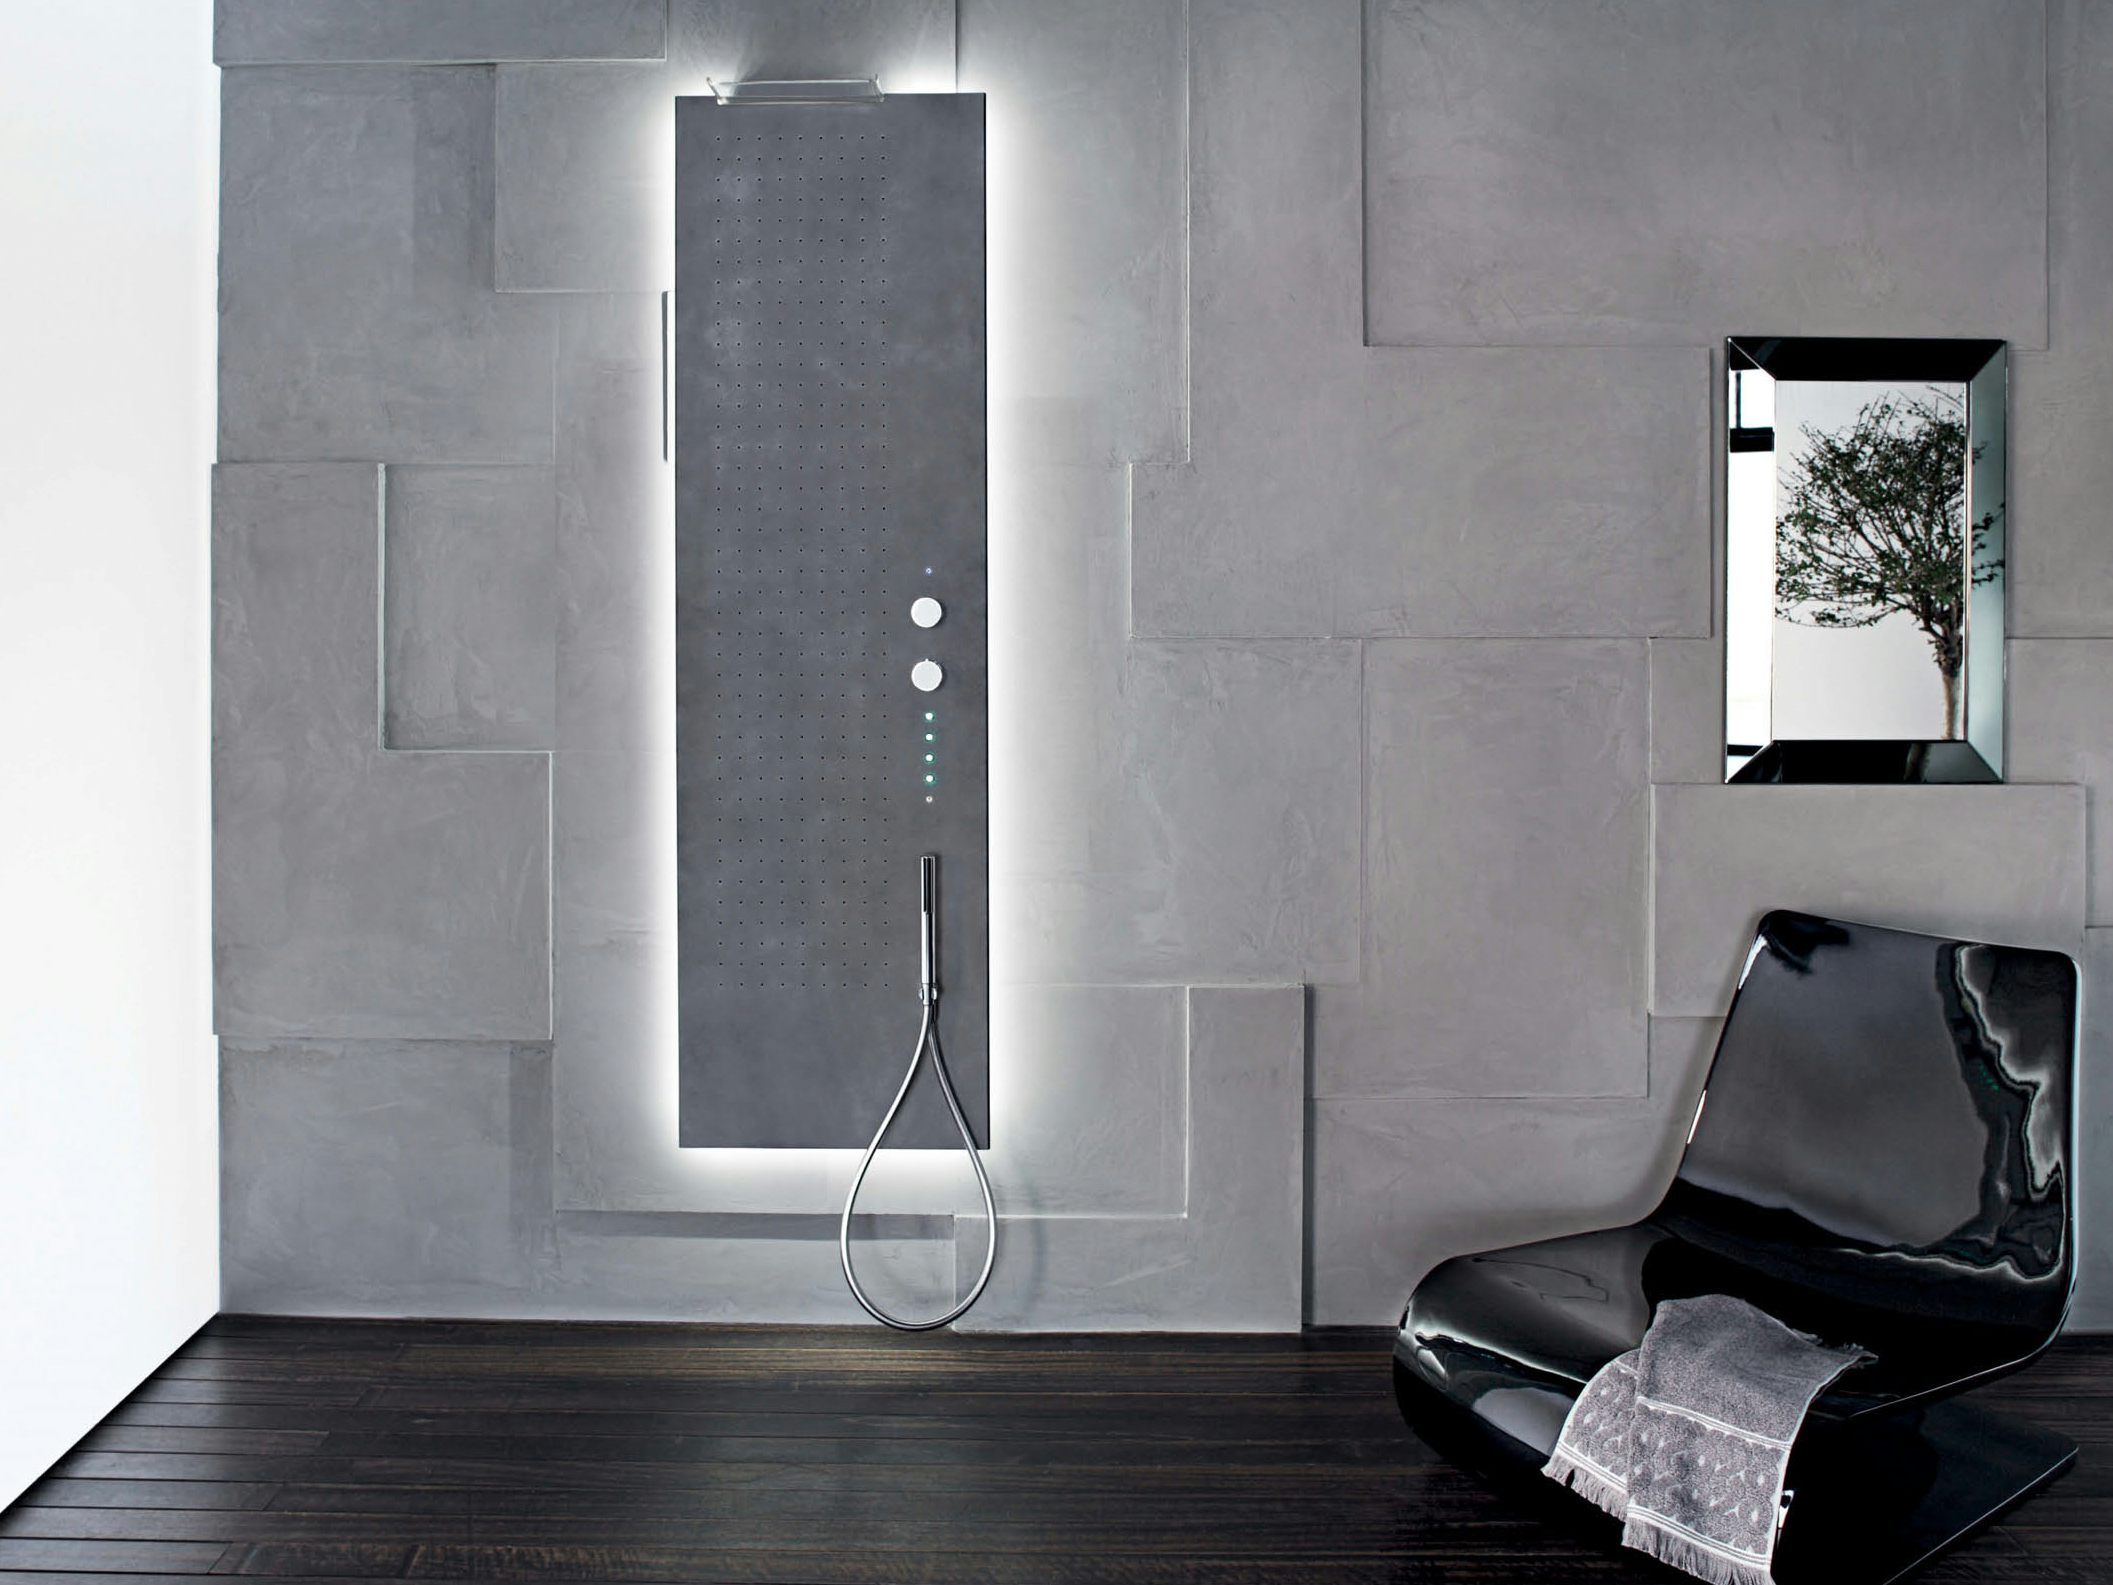 acquapura colonne de douche mural by fantini rubinetti. Black Bedroom Furniture Sets. Home Design Ideas